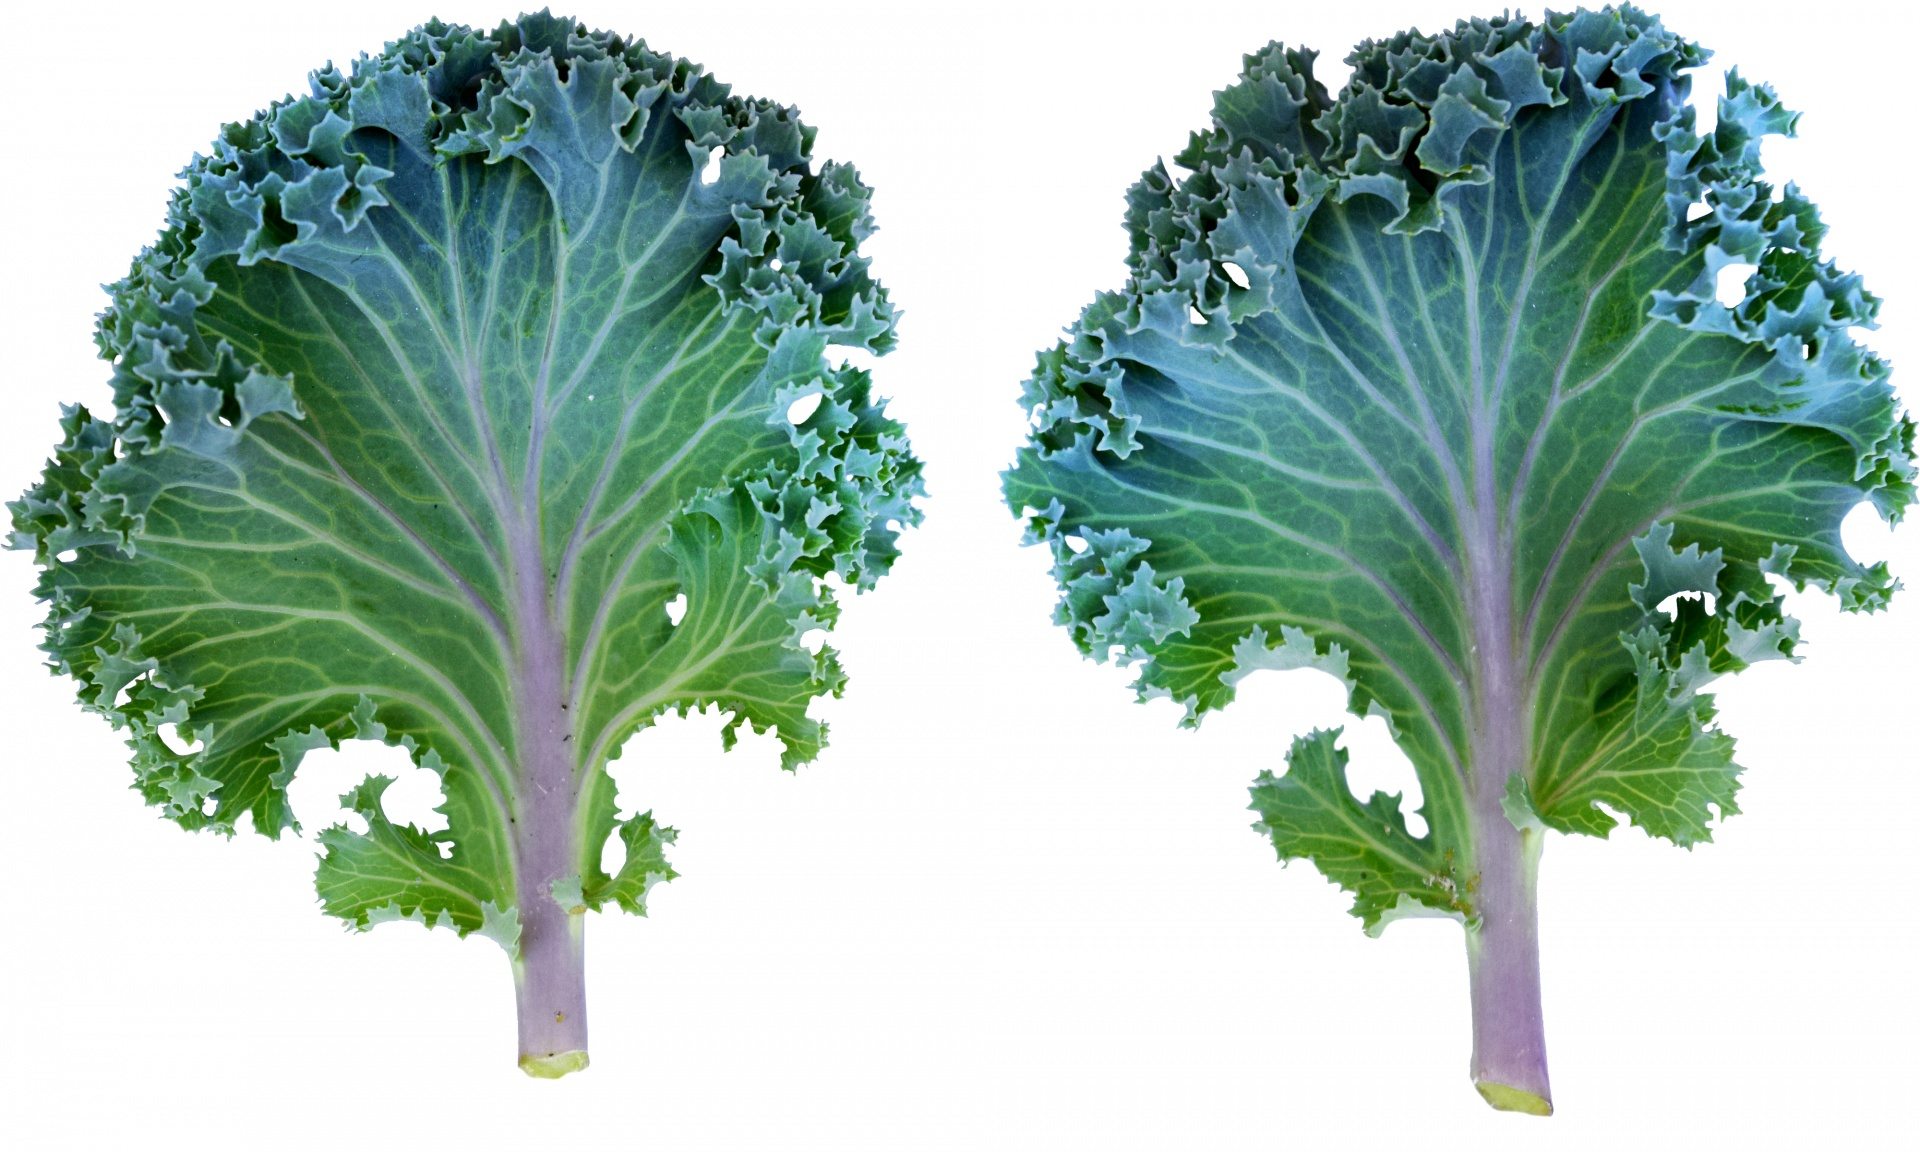 Ingredient of the Week: Kale